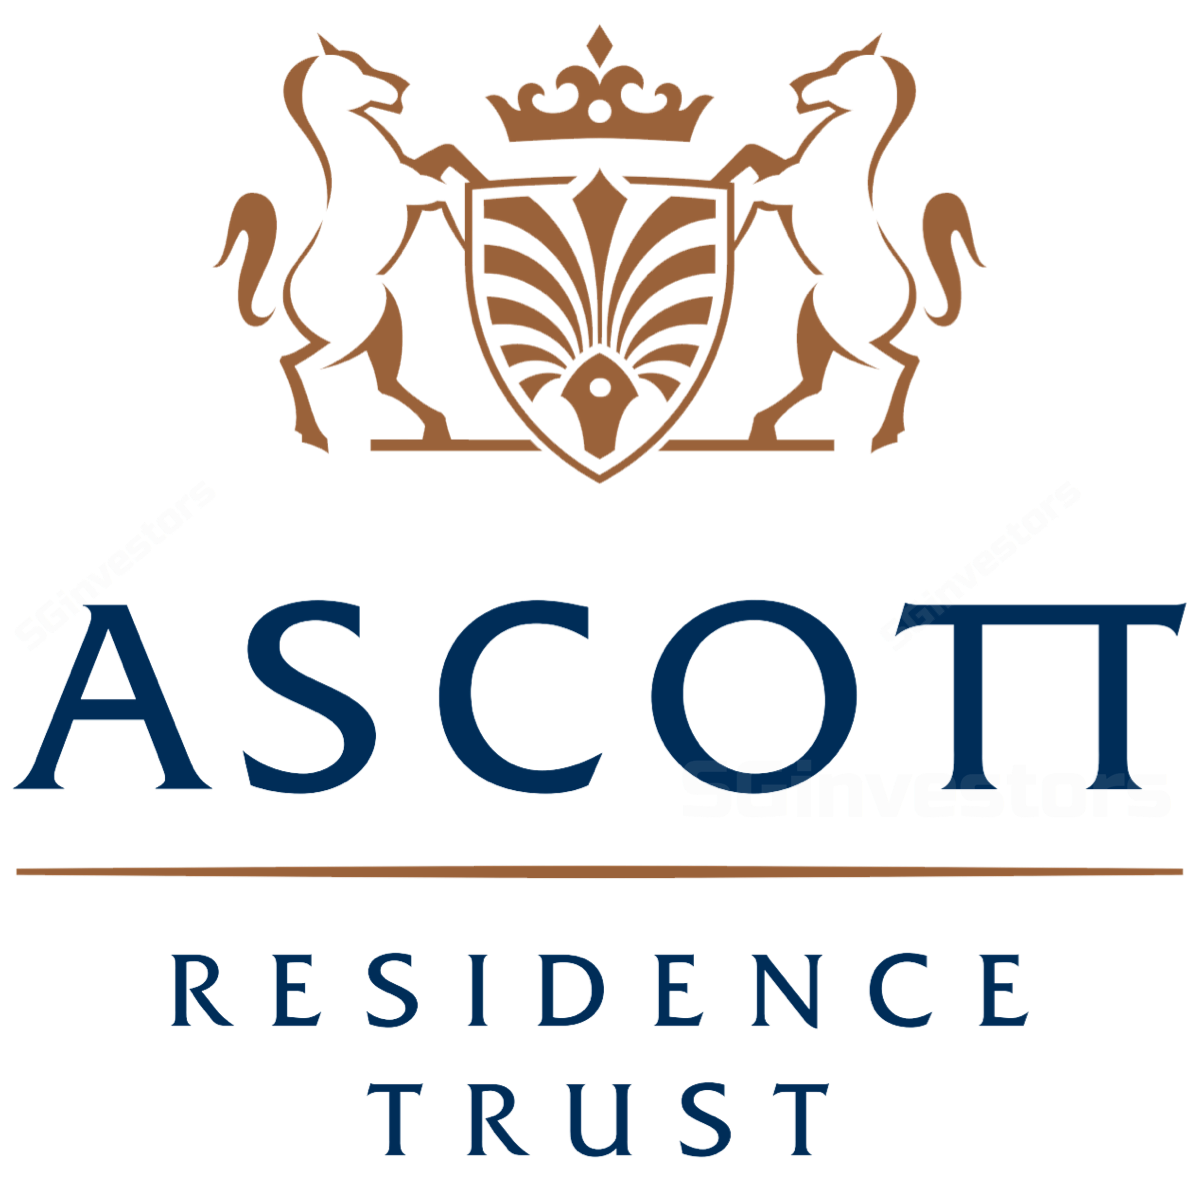 Ascott Residence Trust - CIMB Research 2017-05-31: Turning Incrementally Positive